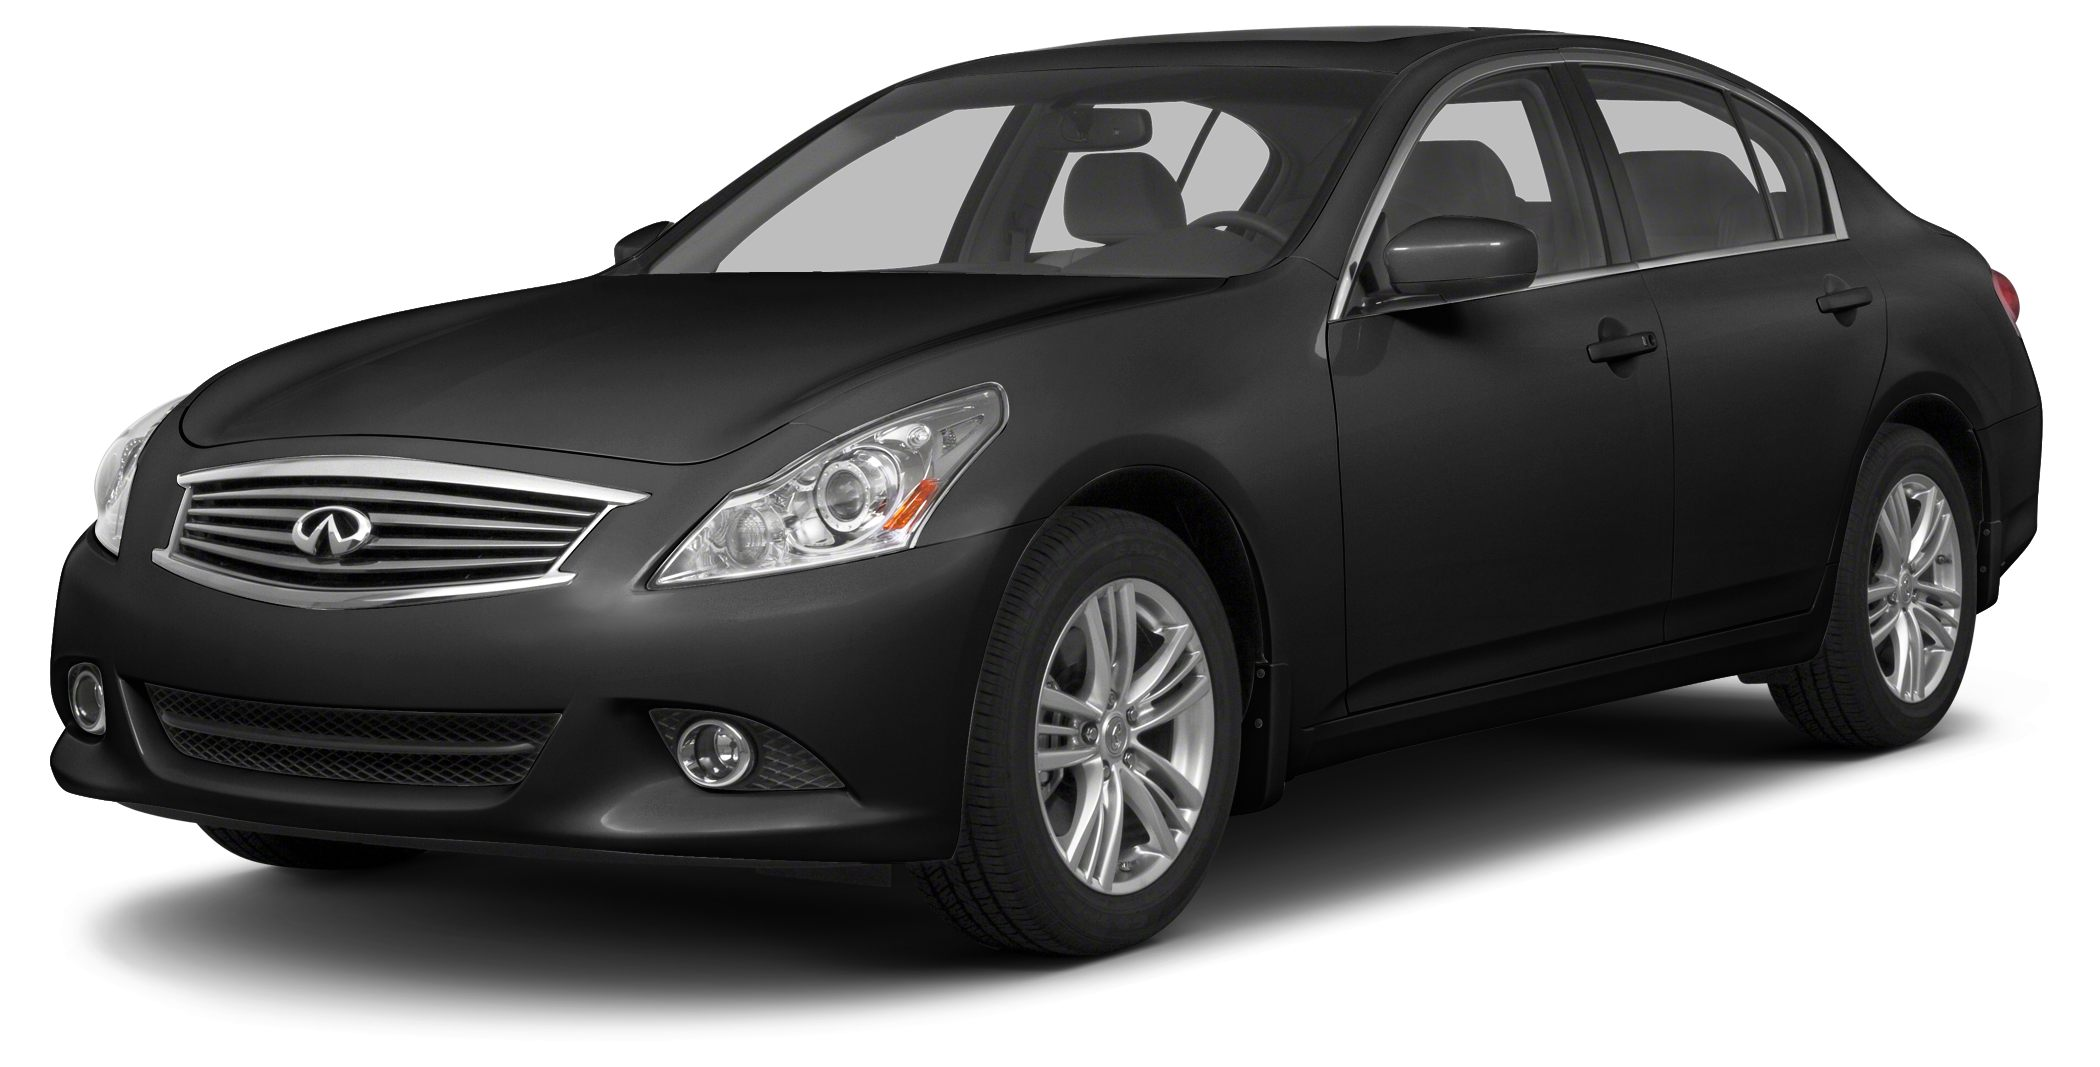 2013 INFINITI G37 Journey Miles 64123Color Black Obsidian Stock FJ0830A VIN JN1CV6AP3DM71801